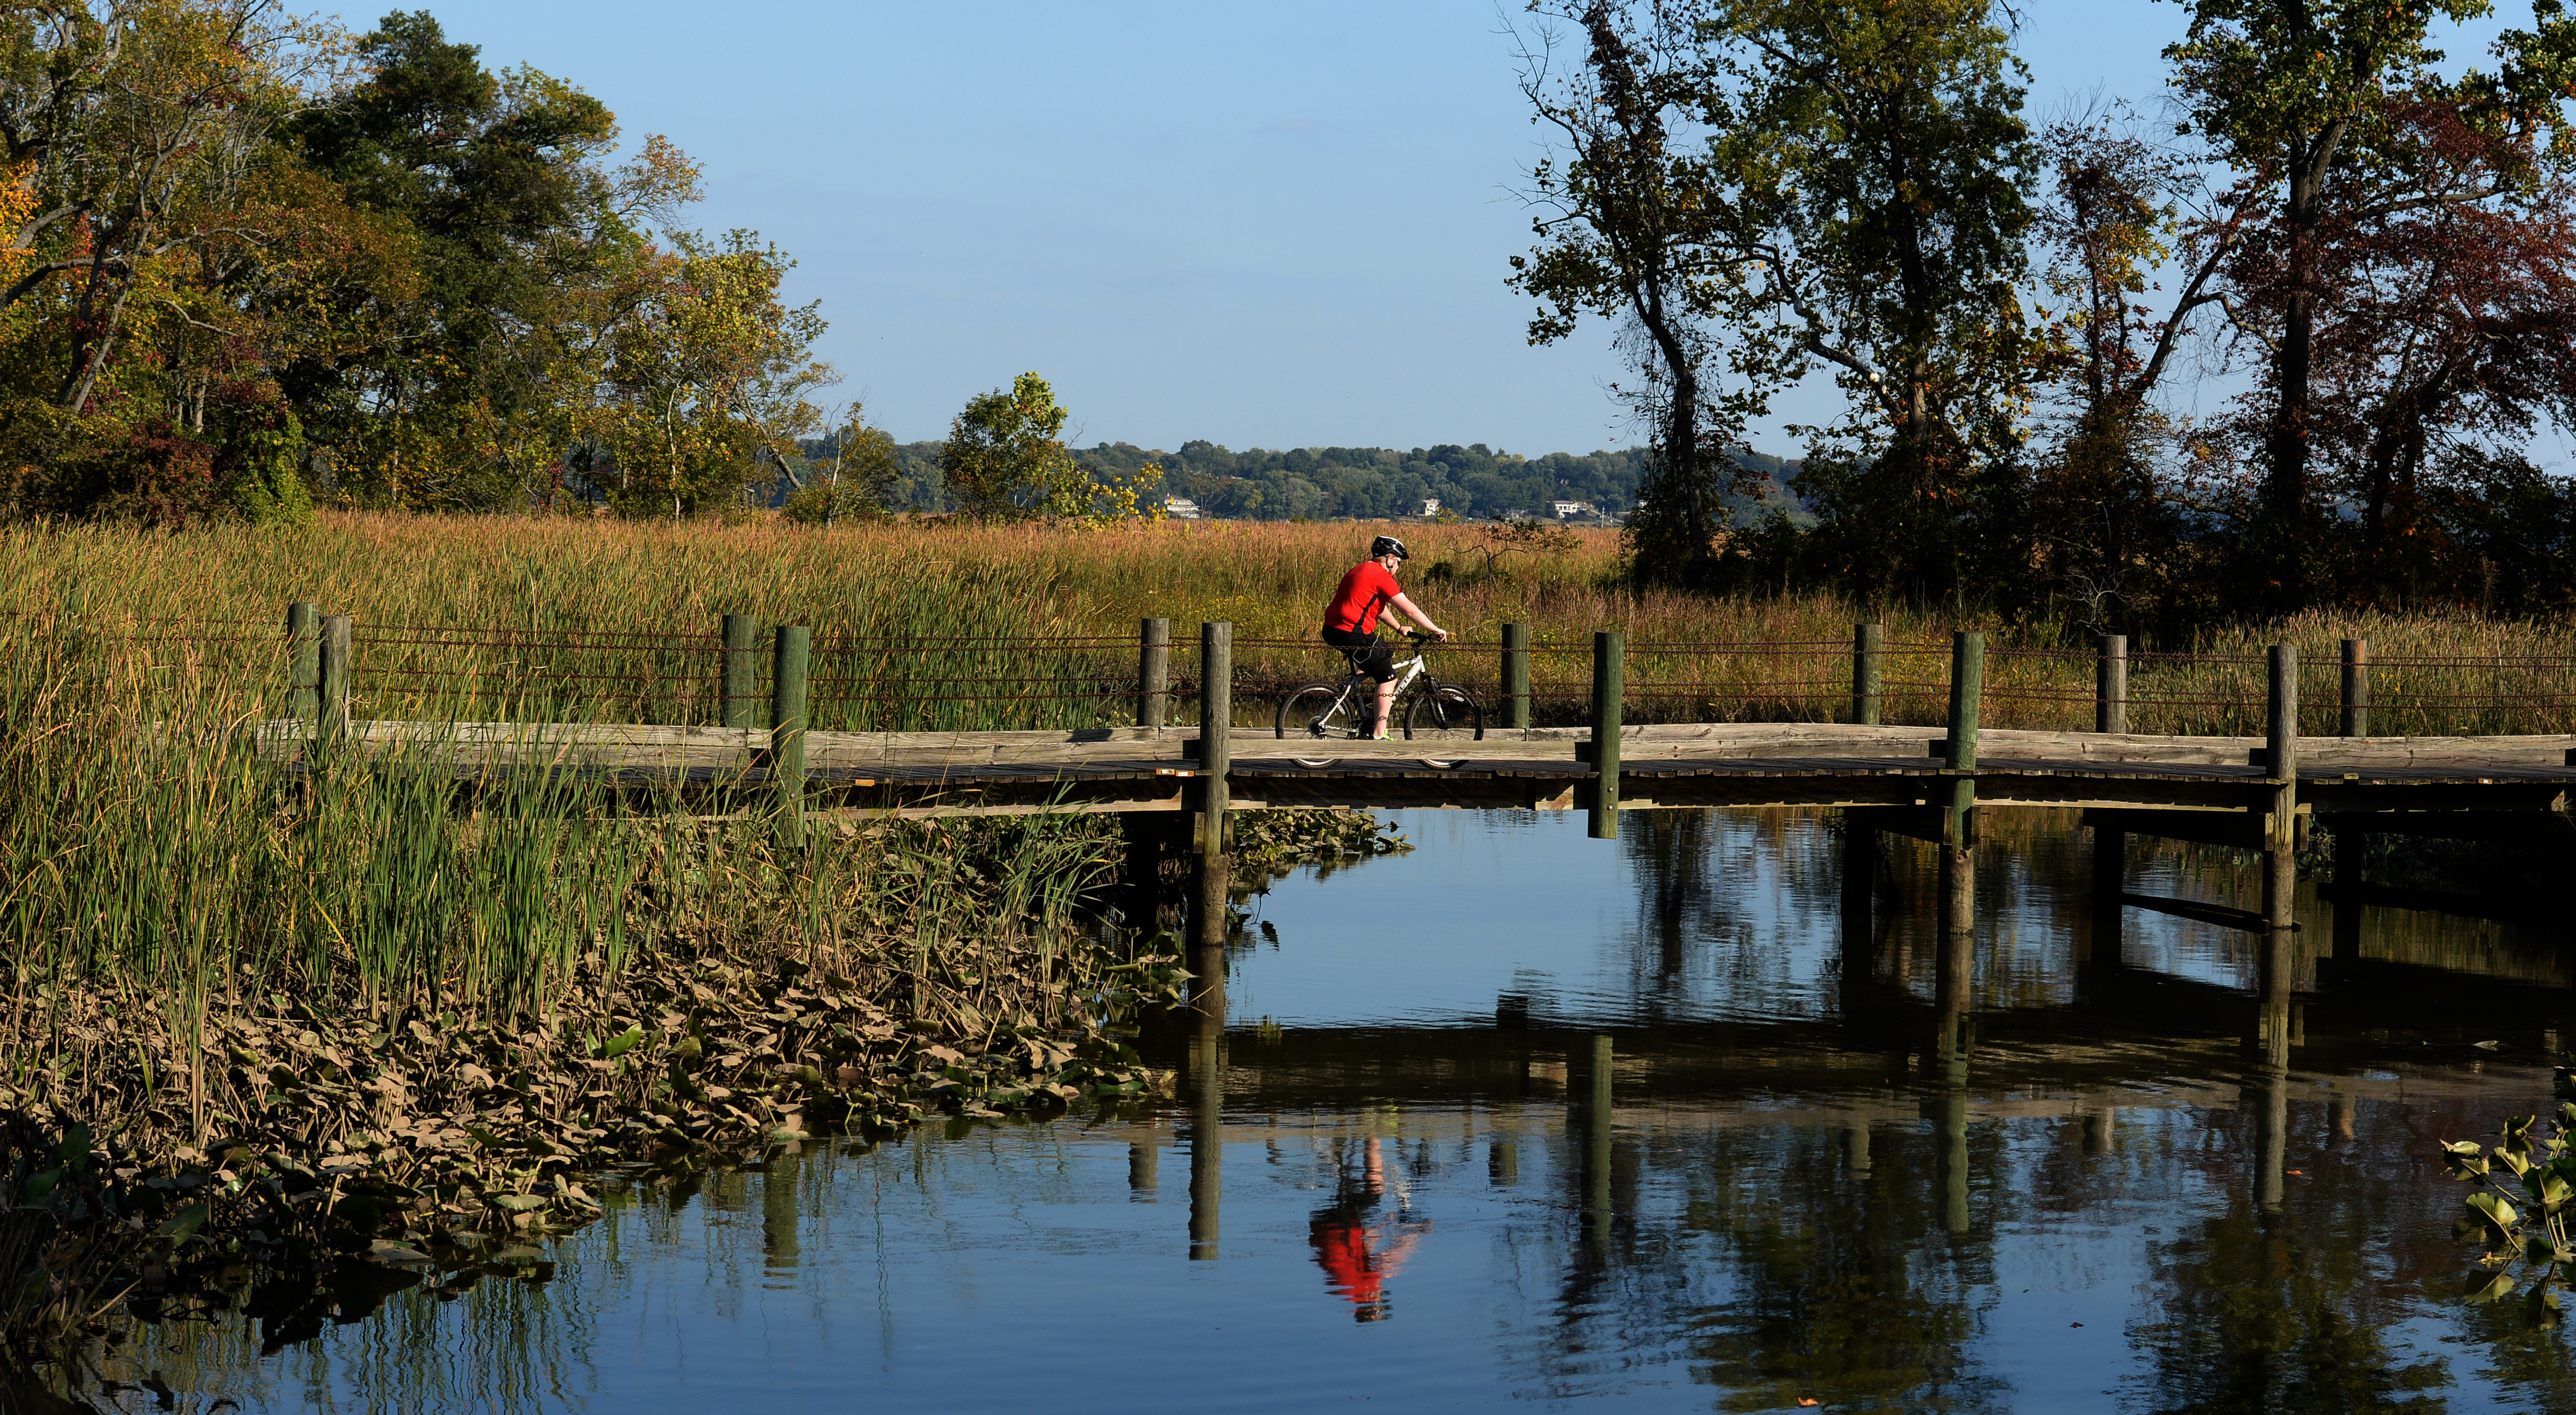 A cyclist rides across a bike trail bridge over a marsh. There is growth and trees in the background.